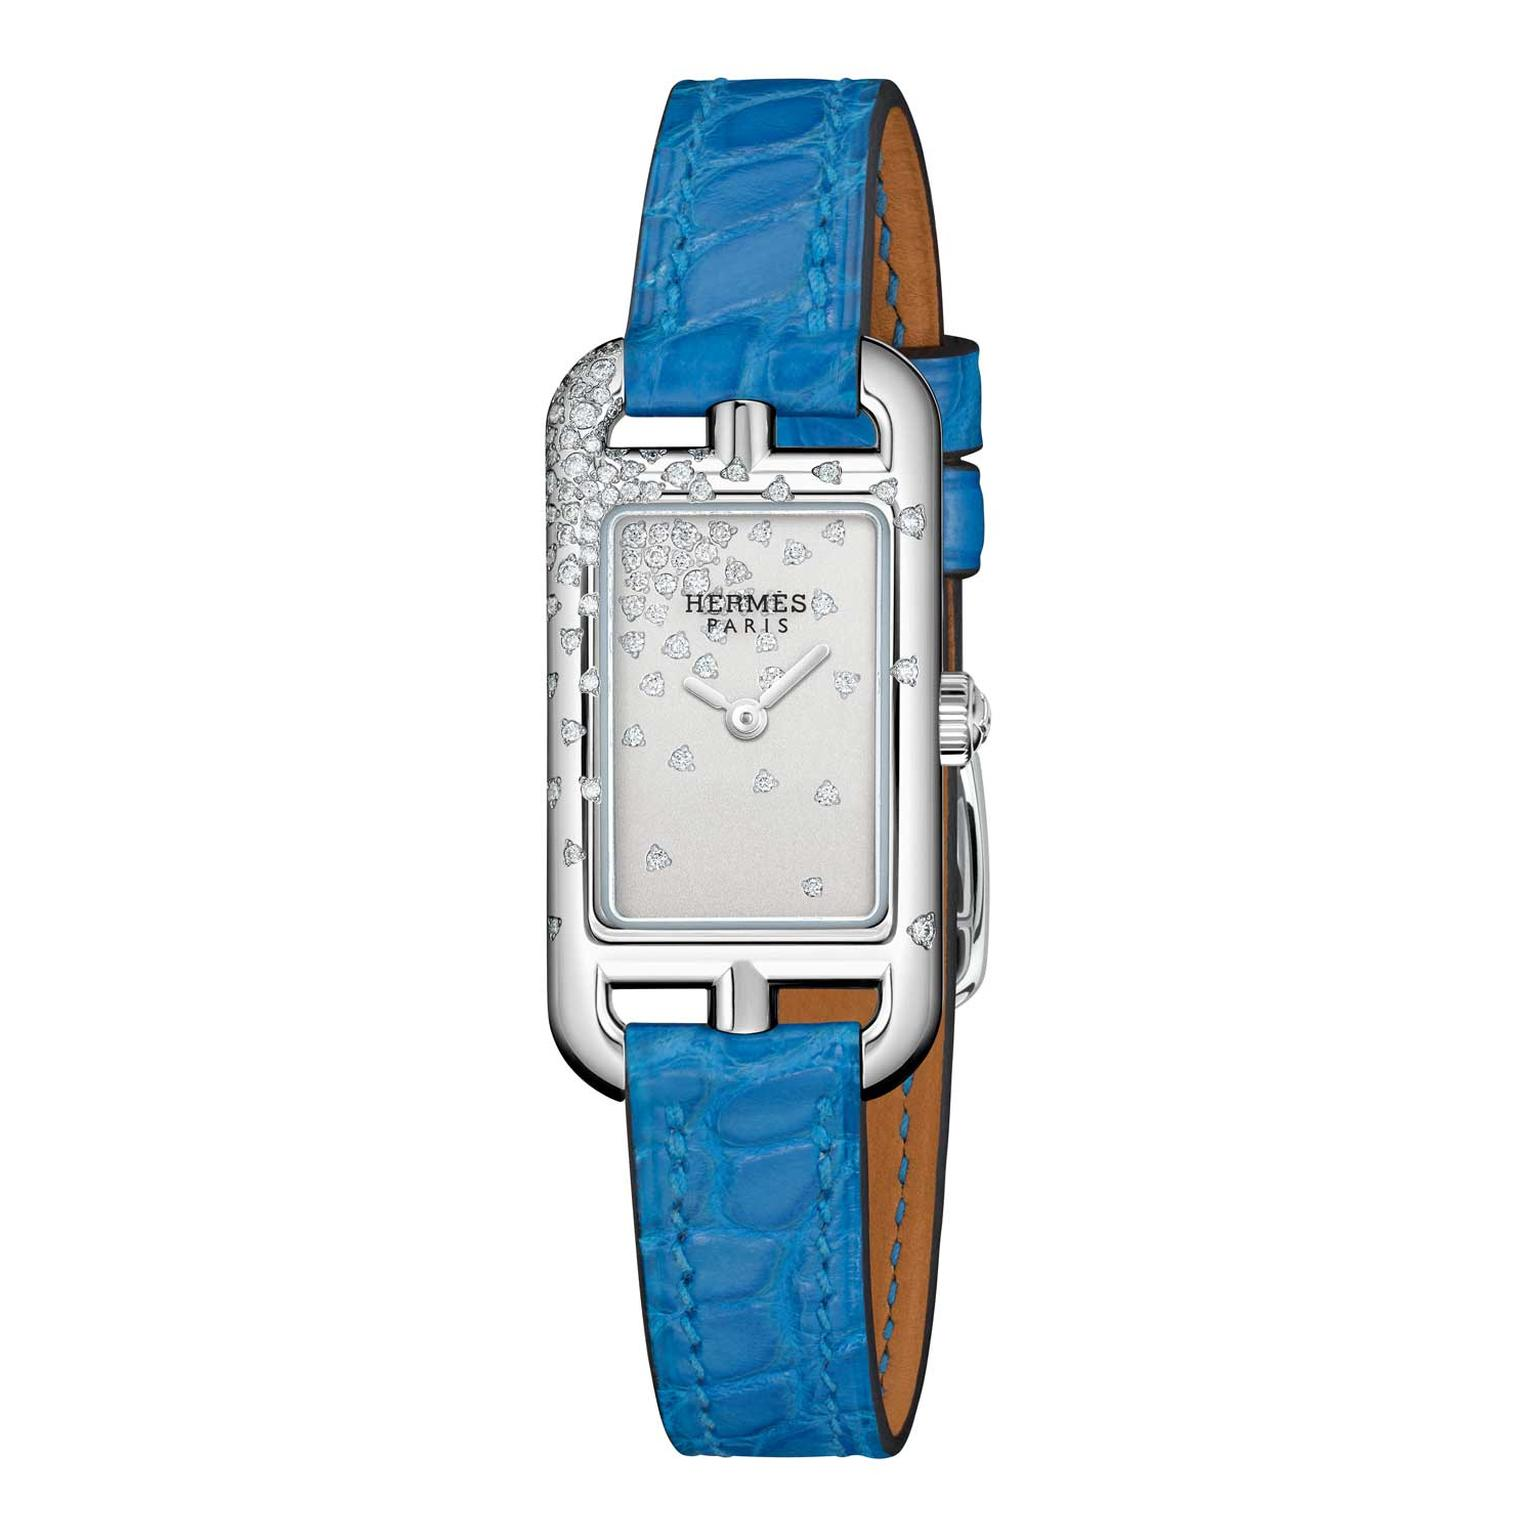 Hermes Nantucket Jete de diamants watch with blue alligator leather strap